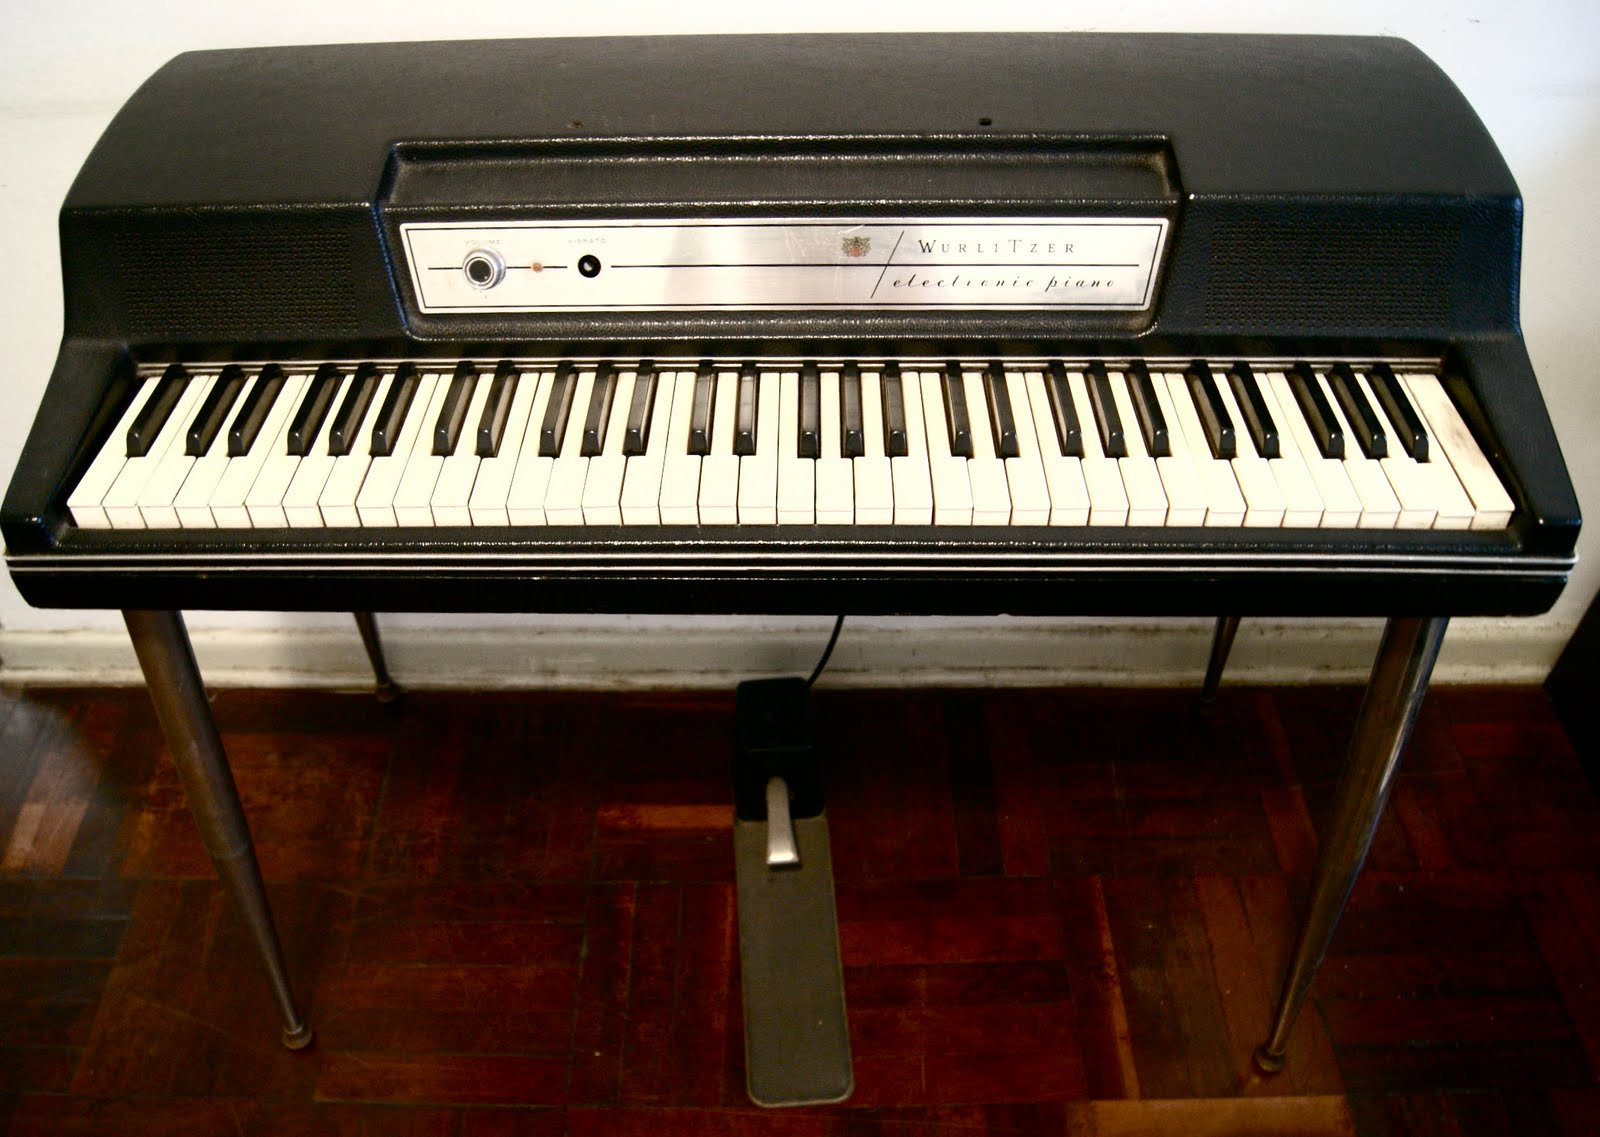 astronauta pinguim wurlitzer 200a electronic piano text in english. Black Bedroom Furniture Sets. Home Design Ideas